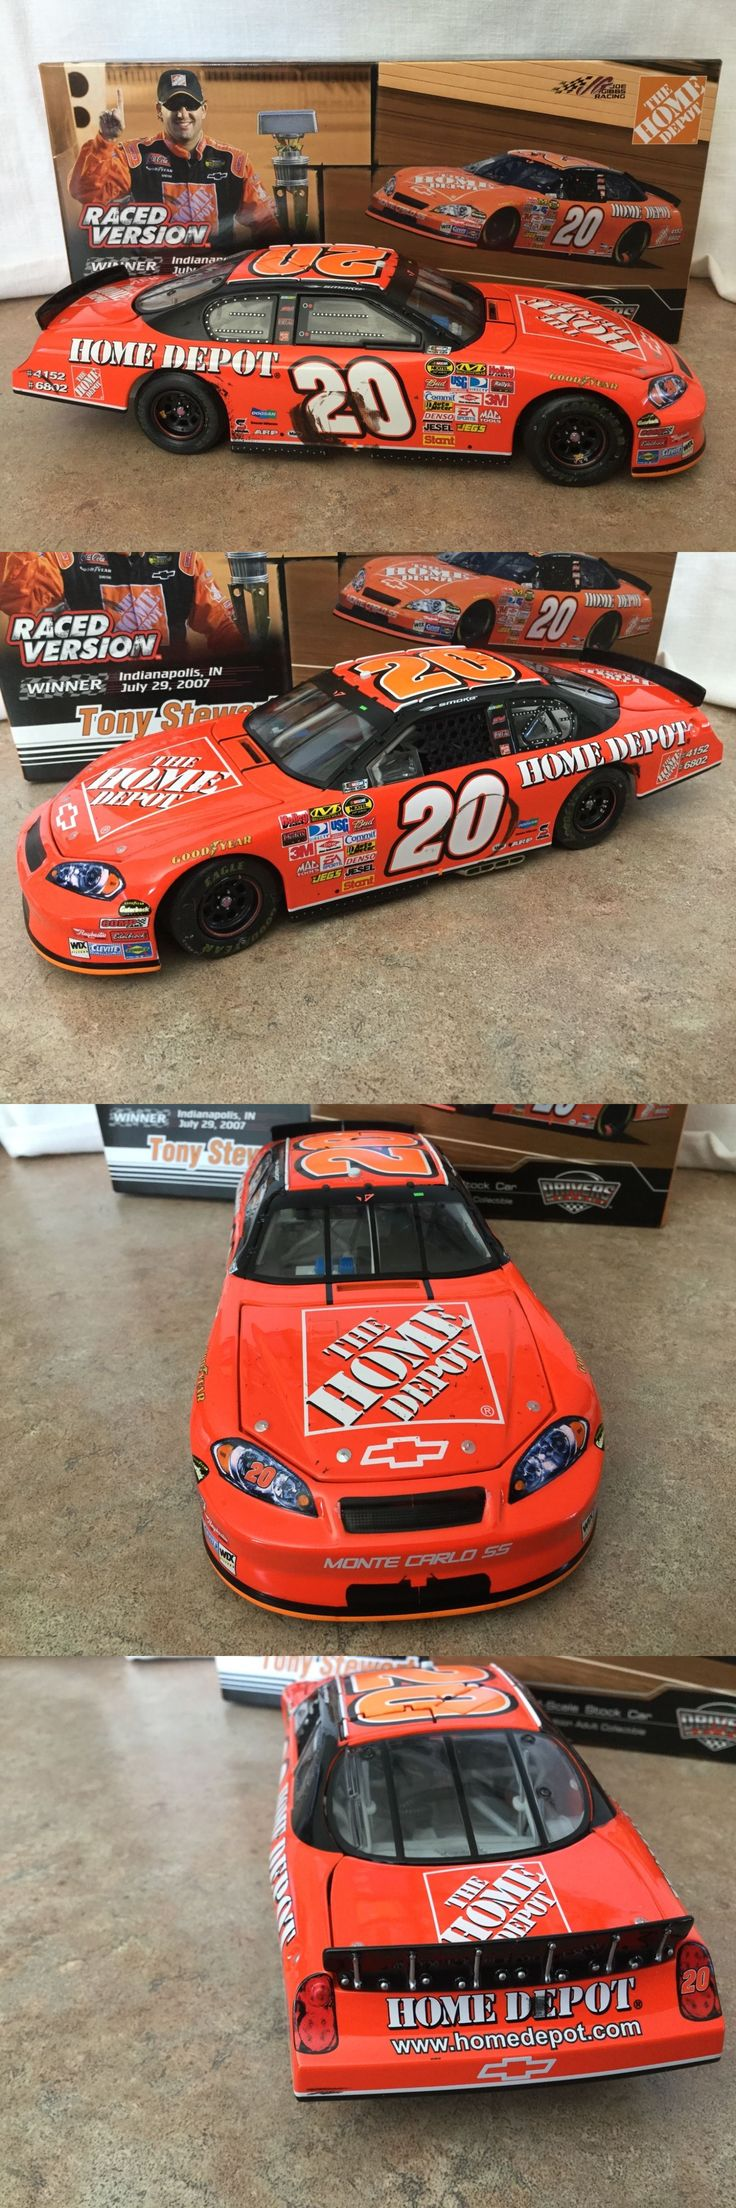 Other Diecast Racing Cars 45354: 2007 Tony Stewart #20 Home Depot Indy Race Win Chevy Monte Carlo 1 24 Cwc -> BUY IT NOW ONLY: $59.95 on eBay!